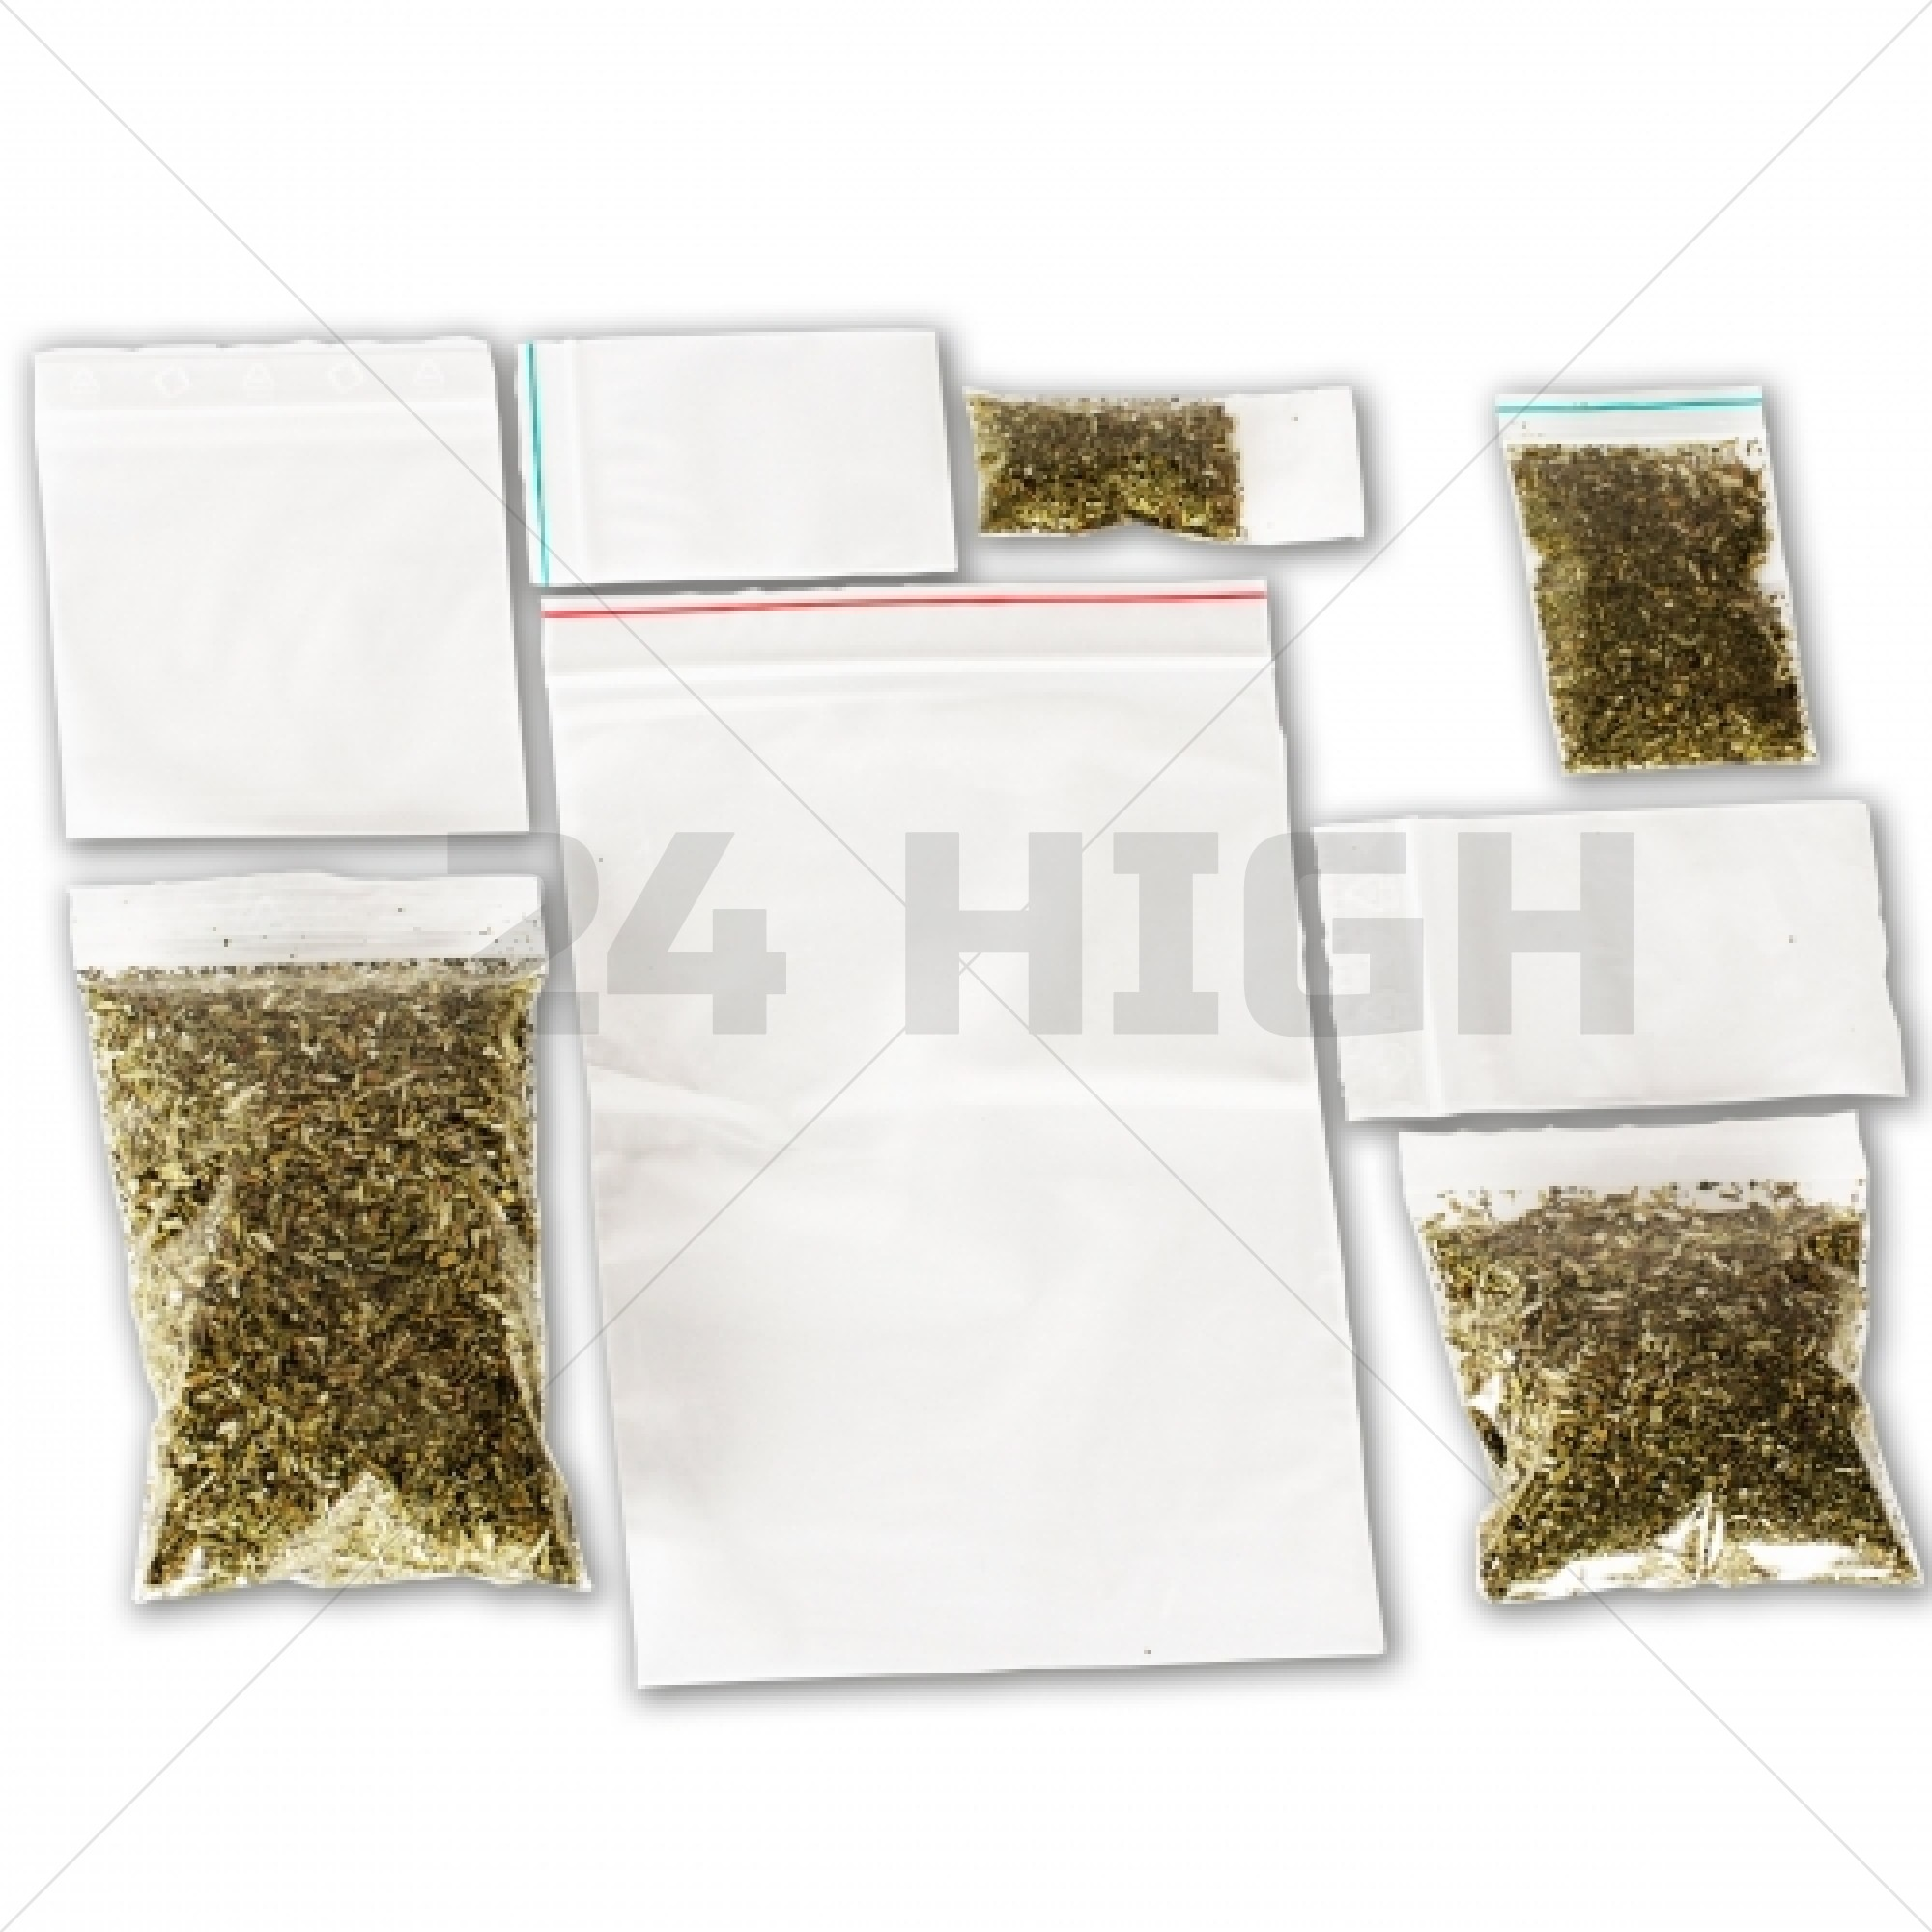 Resealable Grip bags different sizes